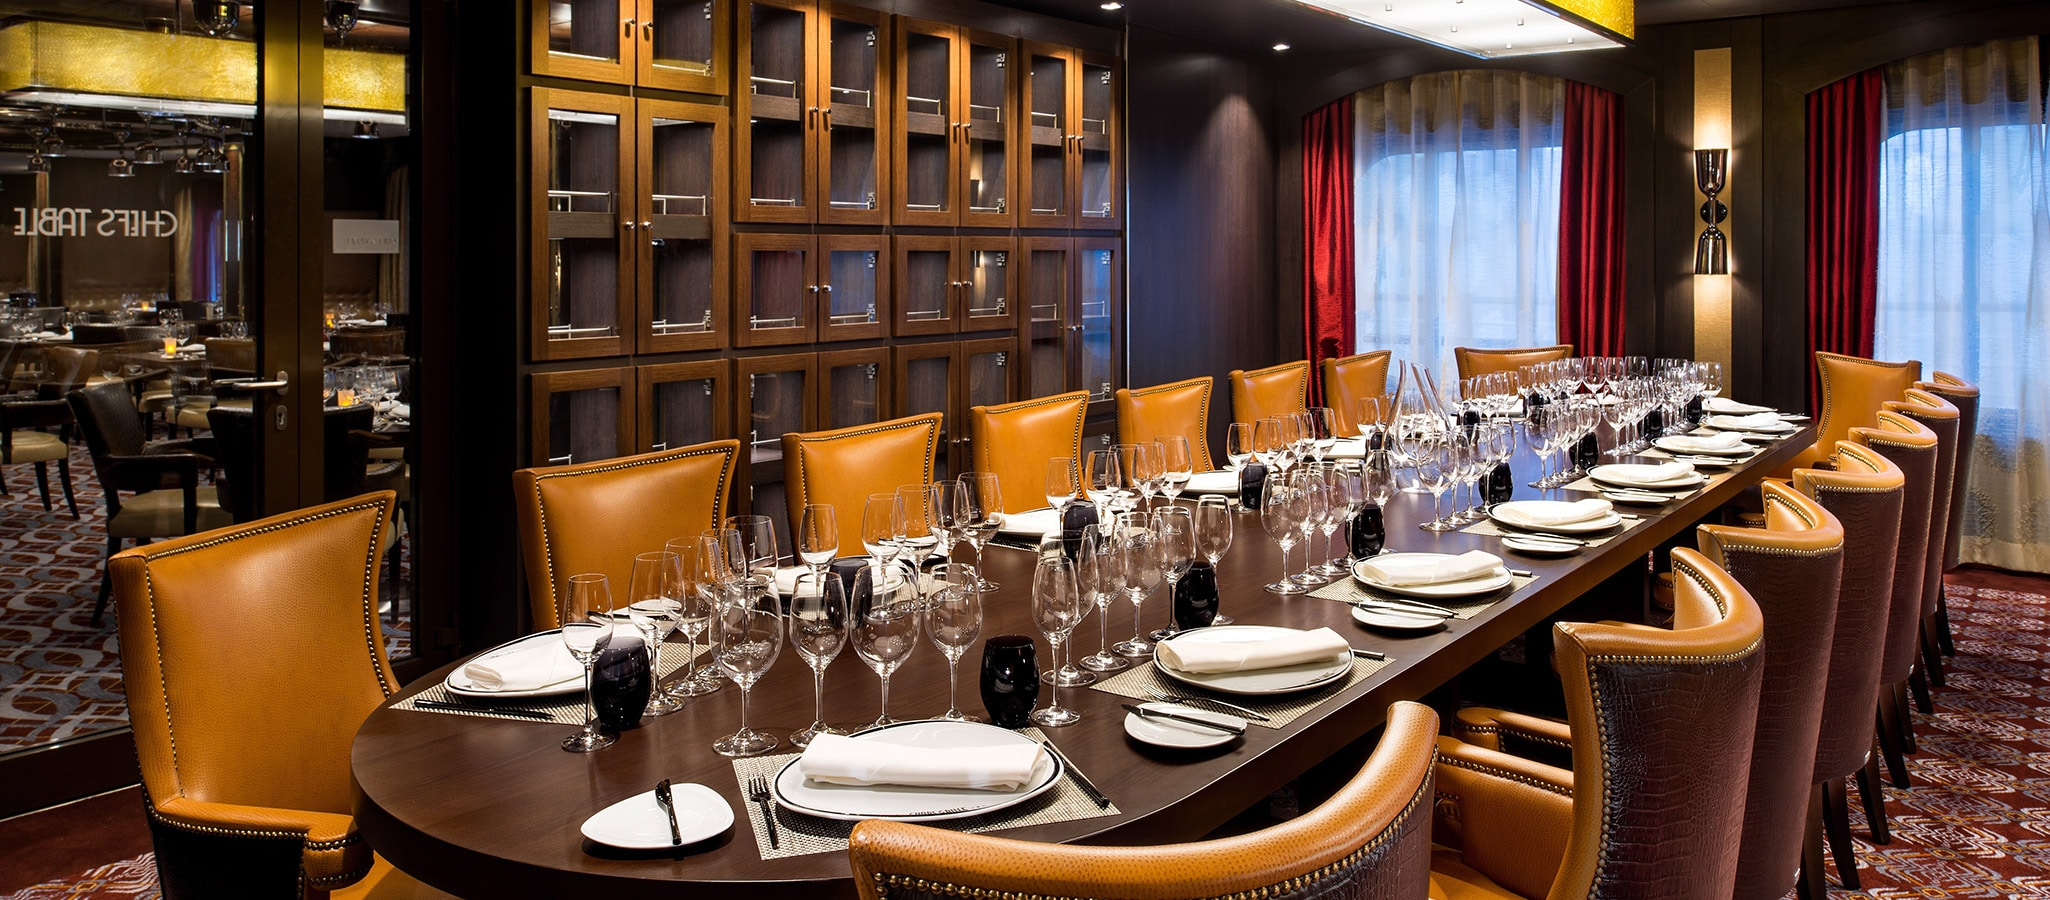 Experience fine dining with your guests, host a board meeting or run a break-out session, the choice is yours.